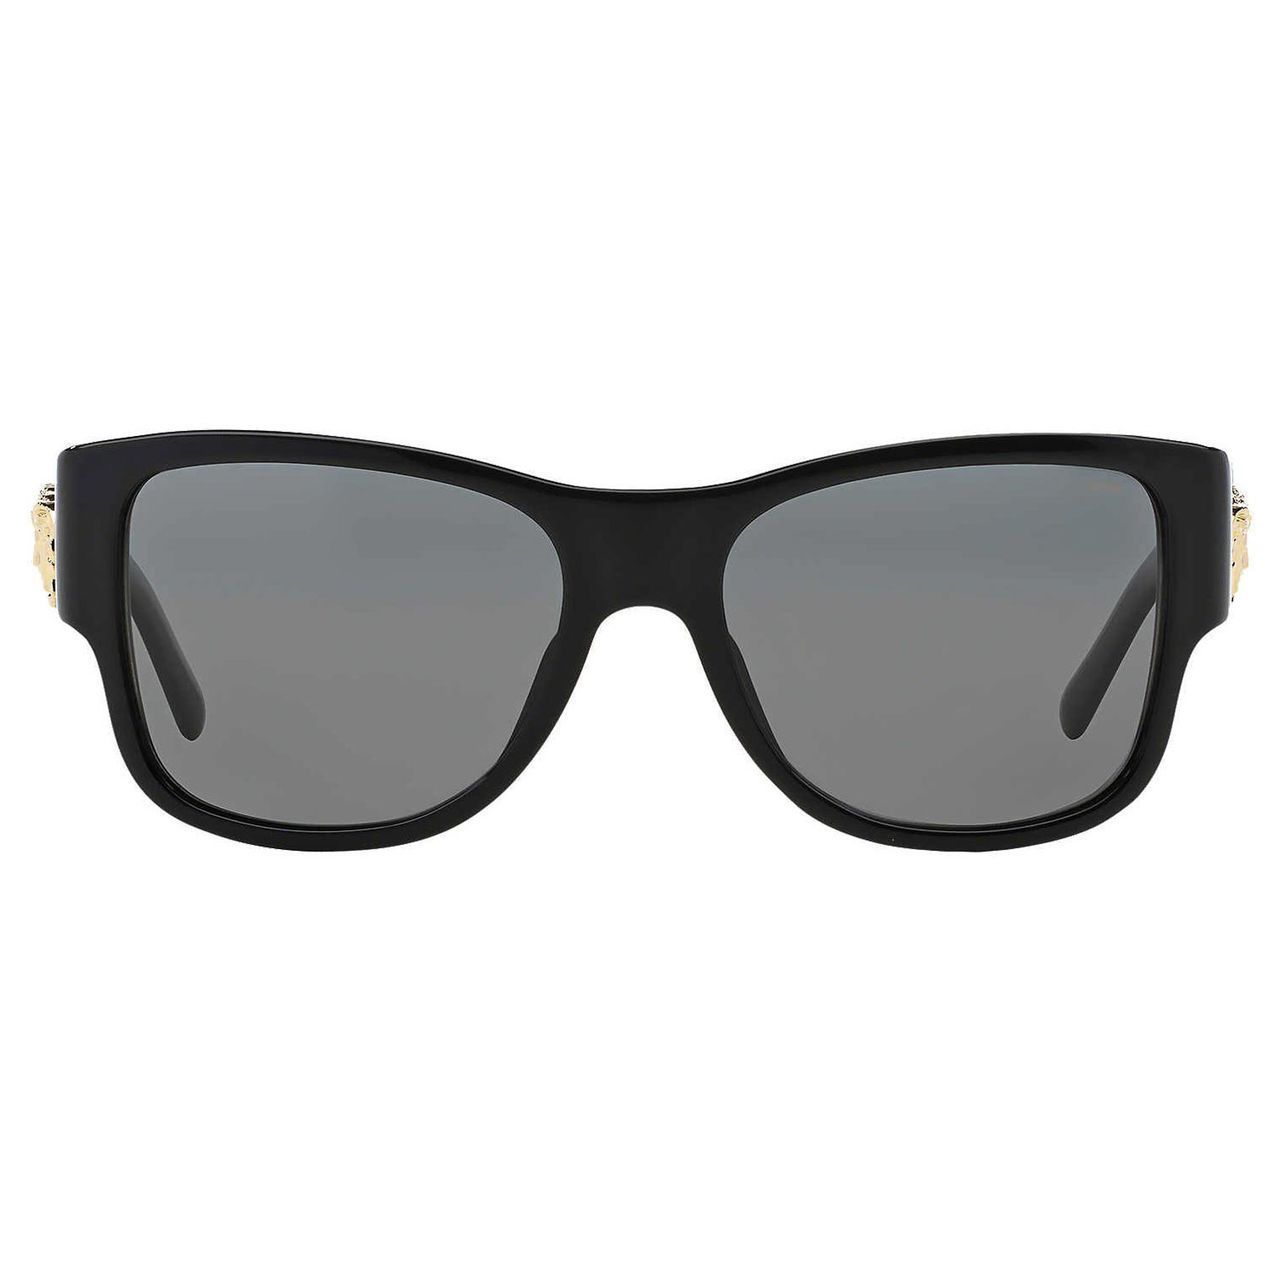 54ad5d96121 Shop Versace Men s VE4275 Plastic Square Polarized Sunglasses - Black -  Free Shipping Today - Overstock - 10455046